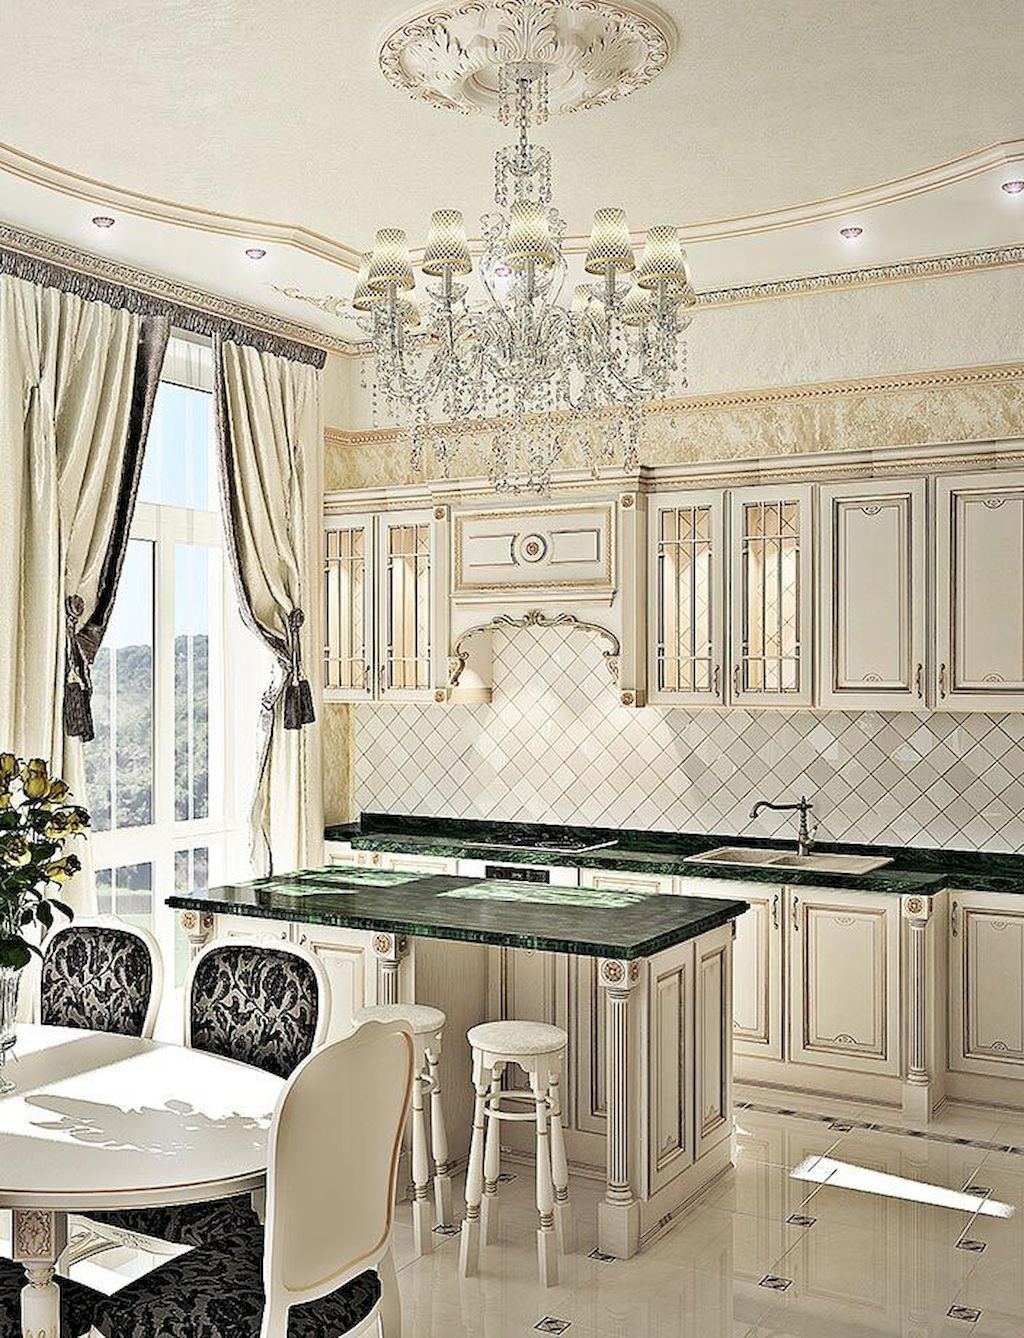 Polinov  instagram photos and videos in pinterest kitchen design home interior house also rh